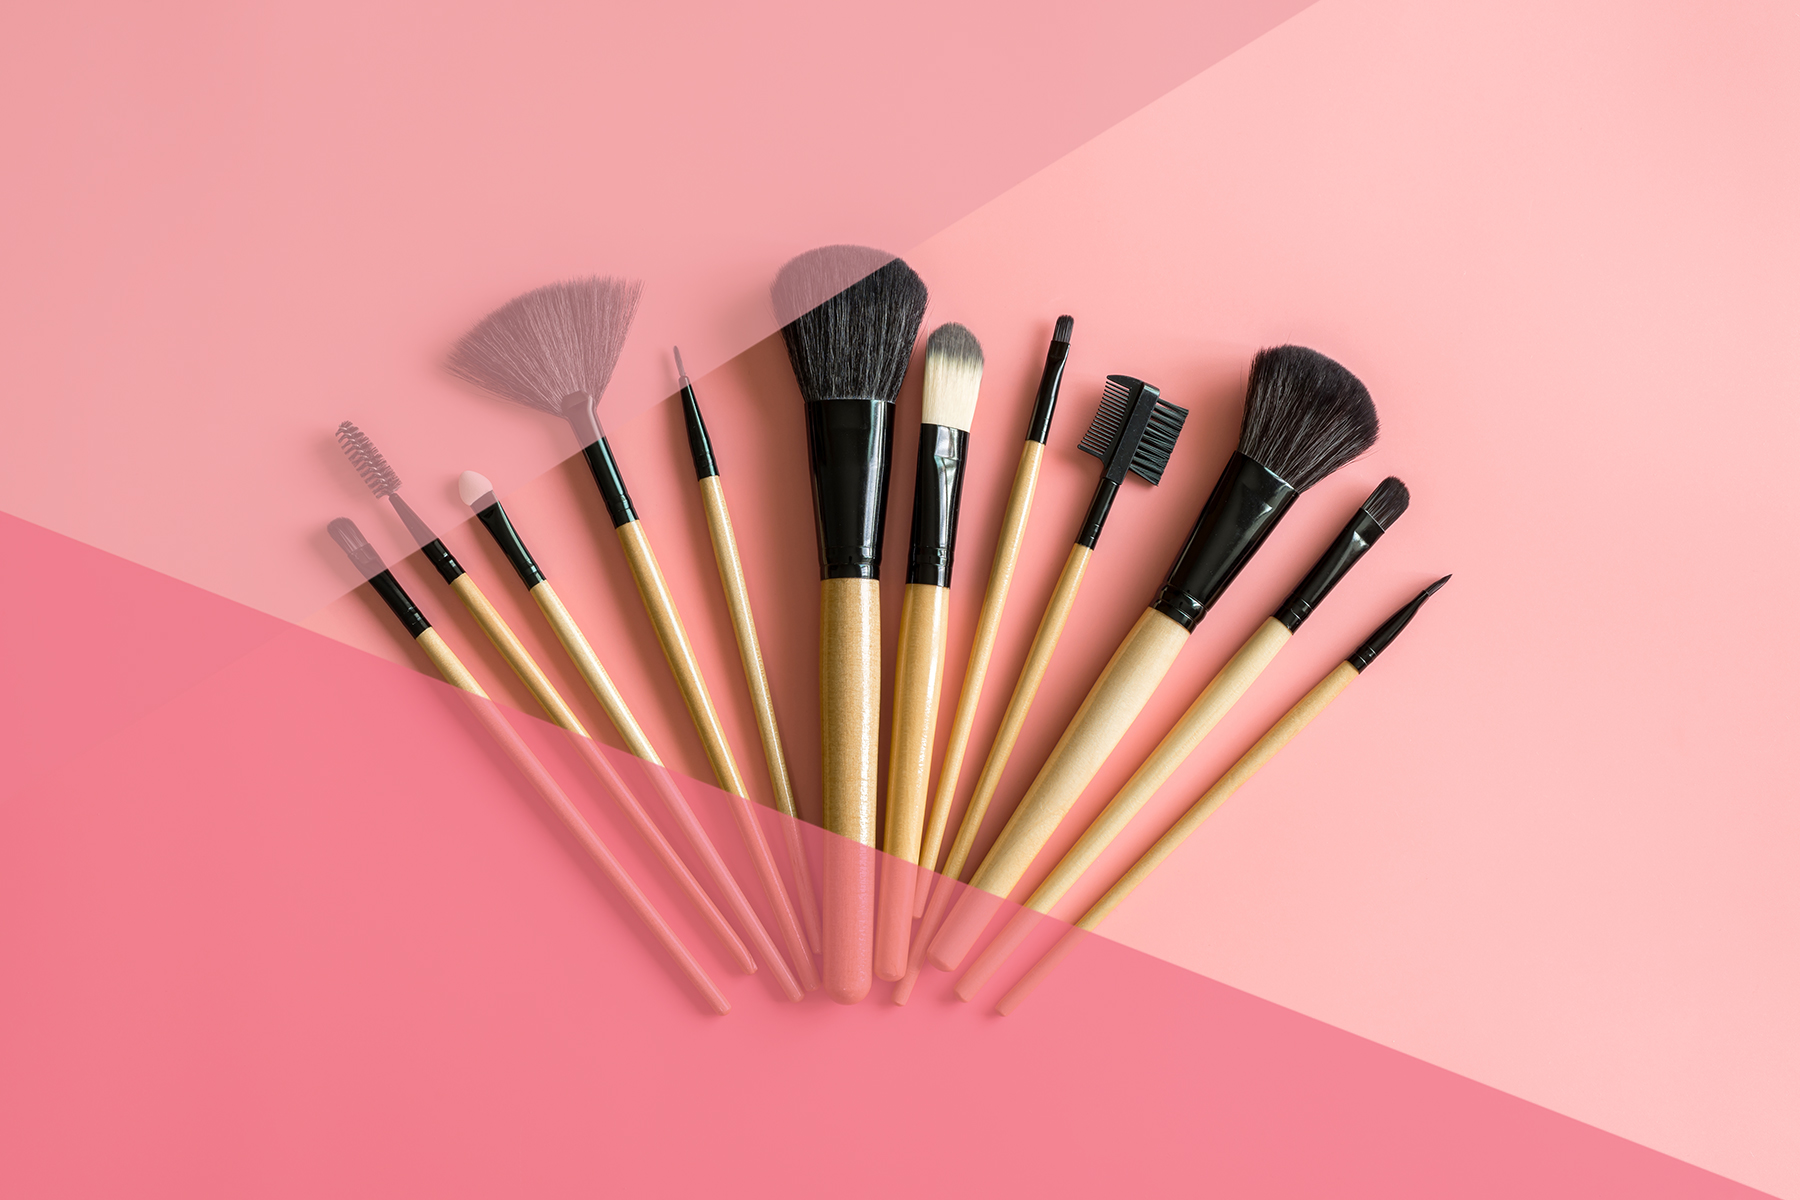 How To Clean Makeup Brushes Like A Pro Real Simple